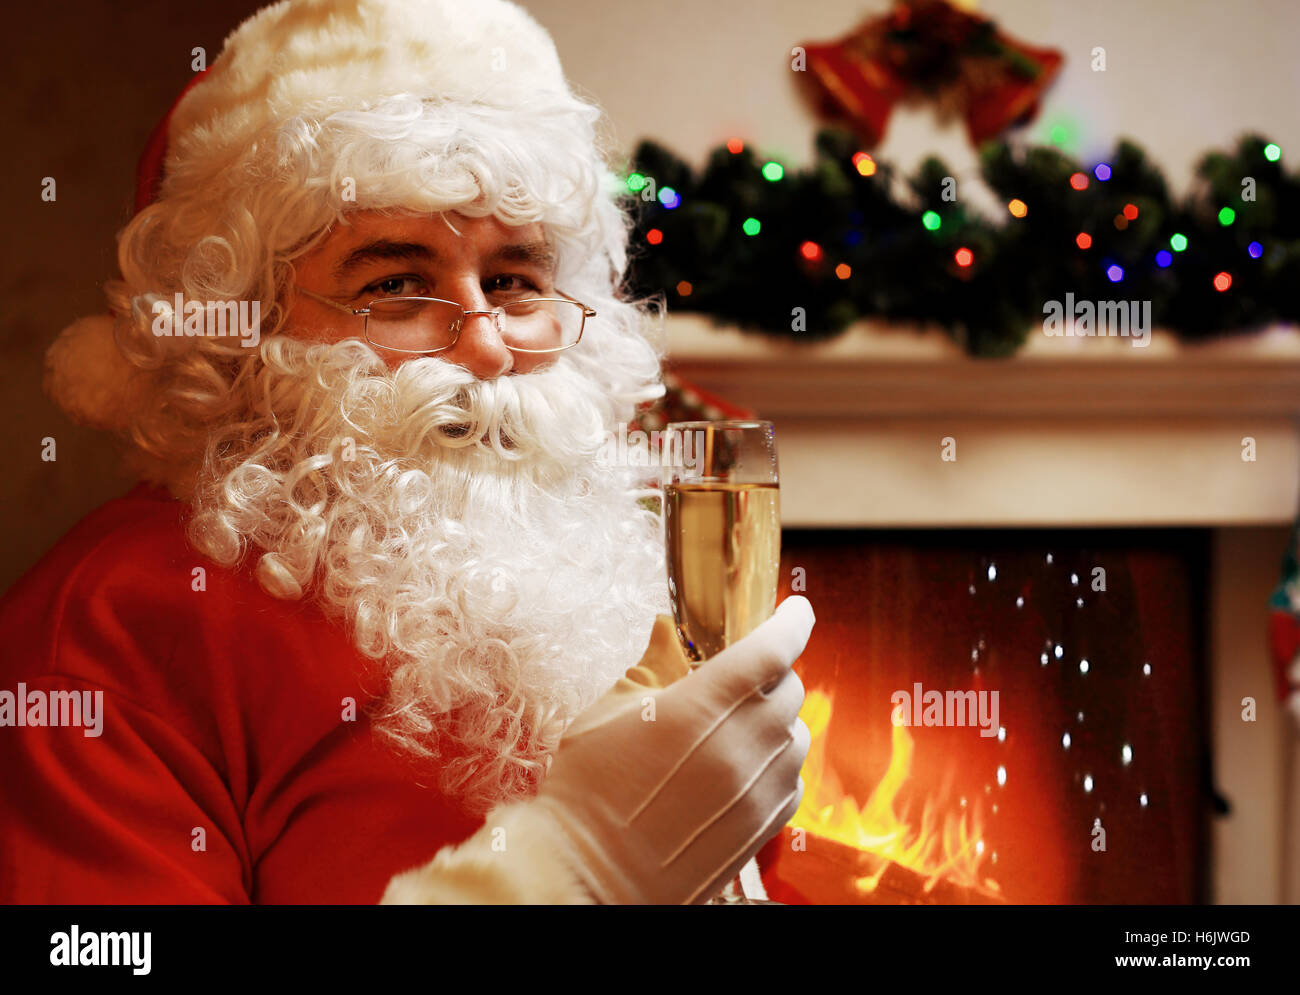 santa claus with glass of sparkling wine champagne near a